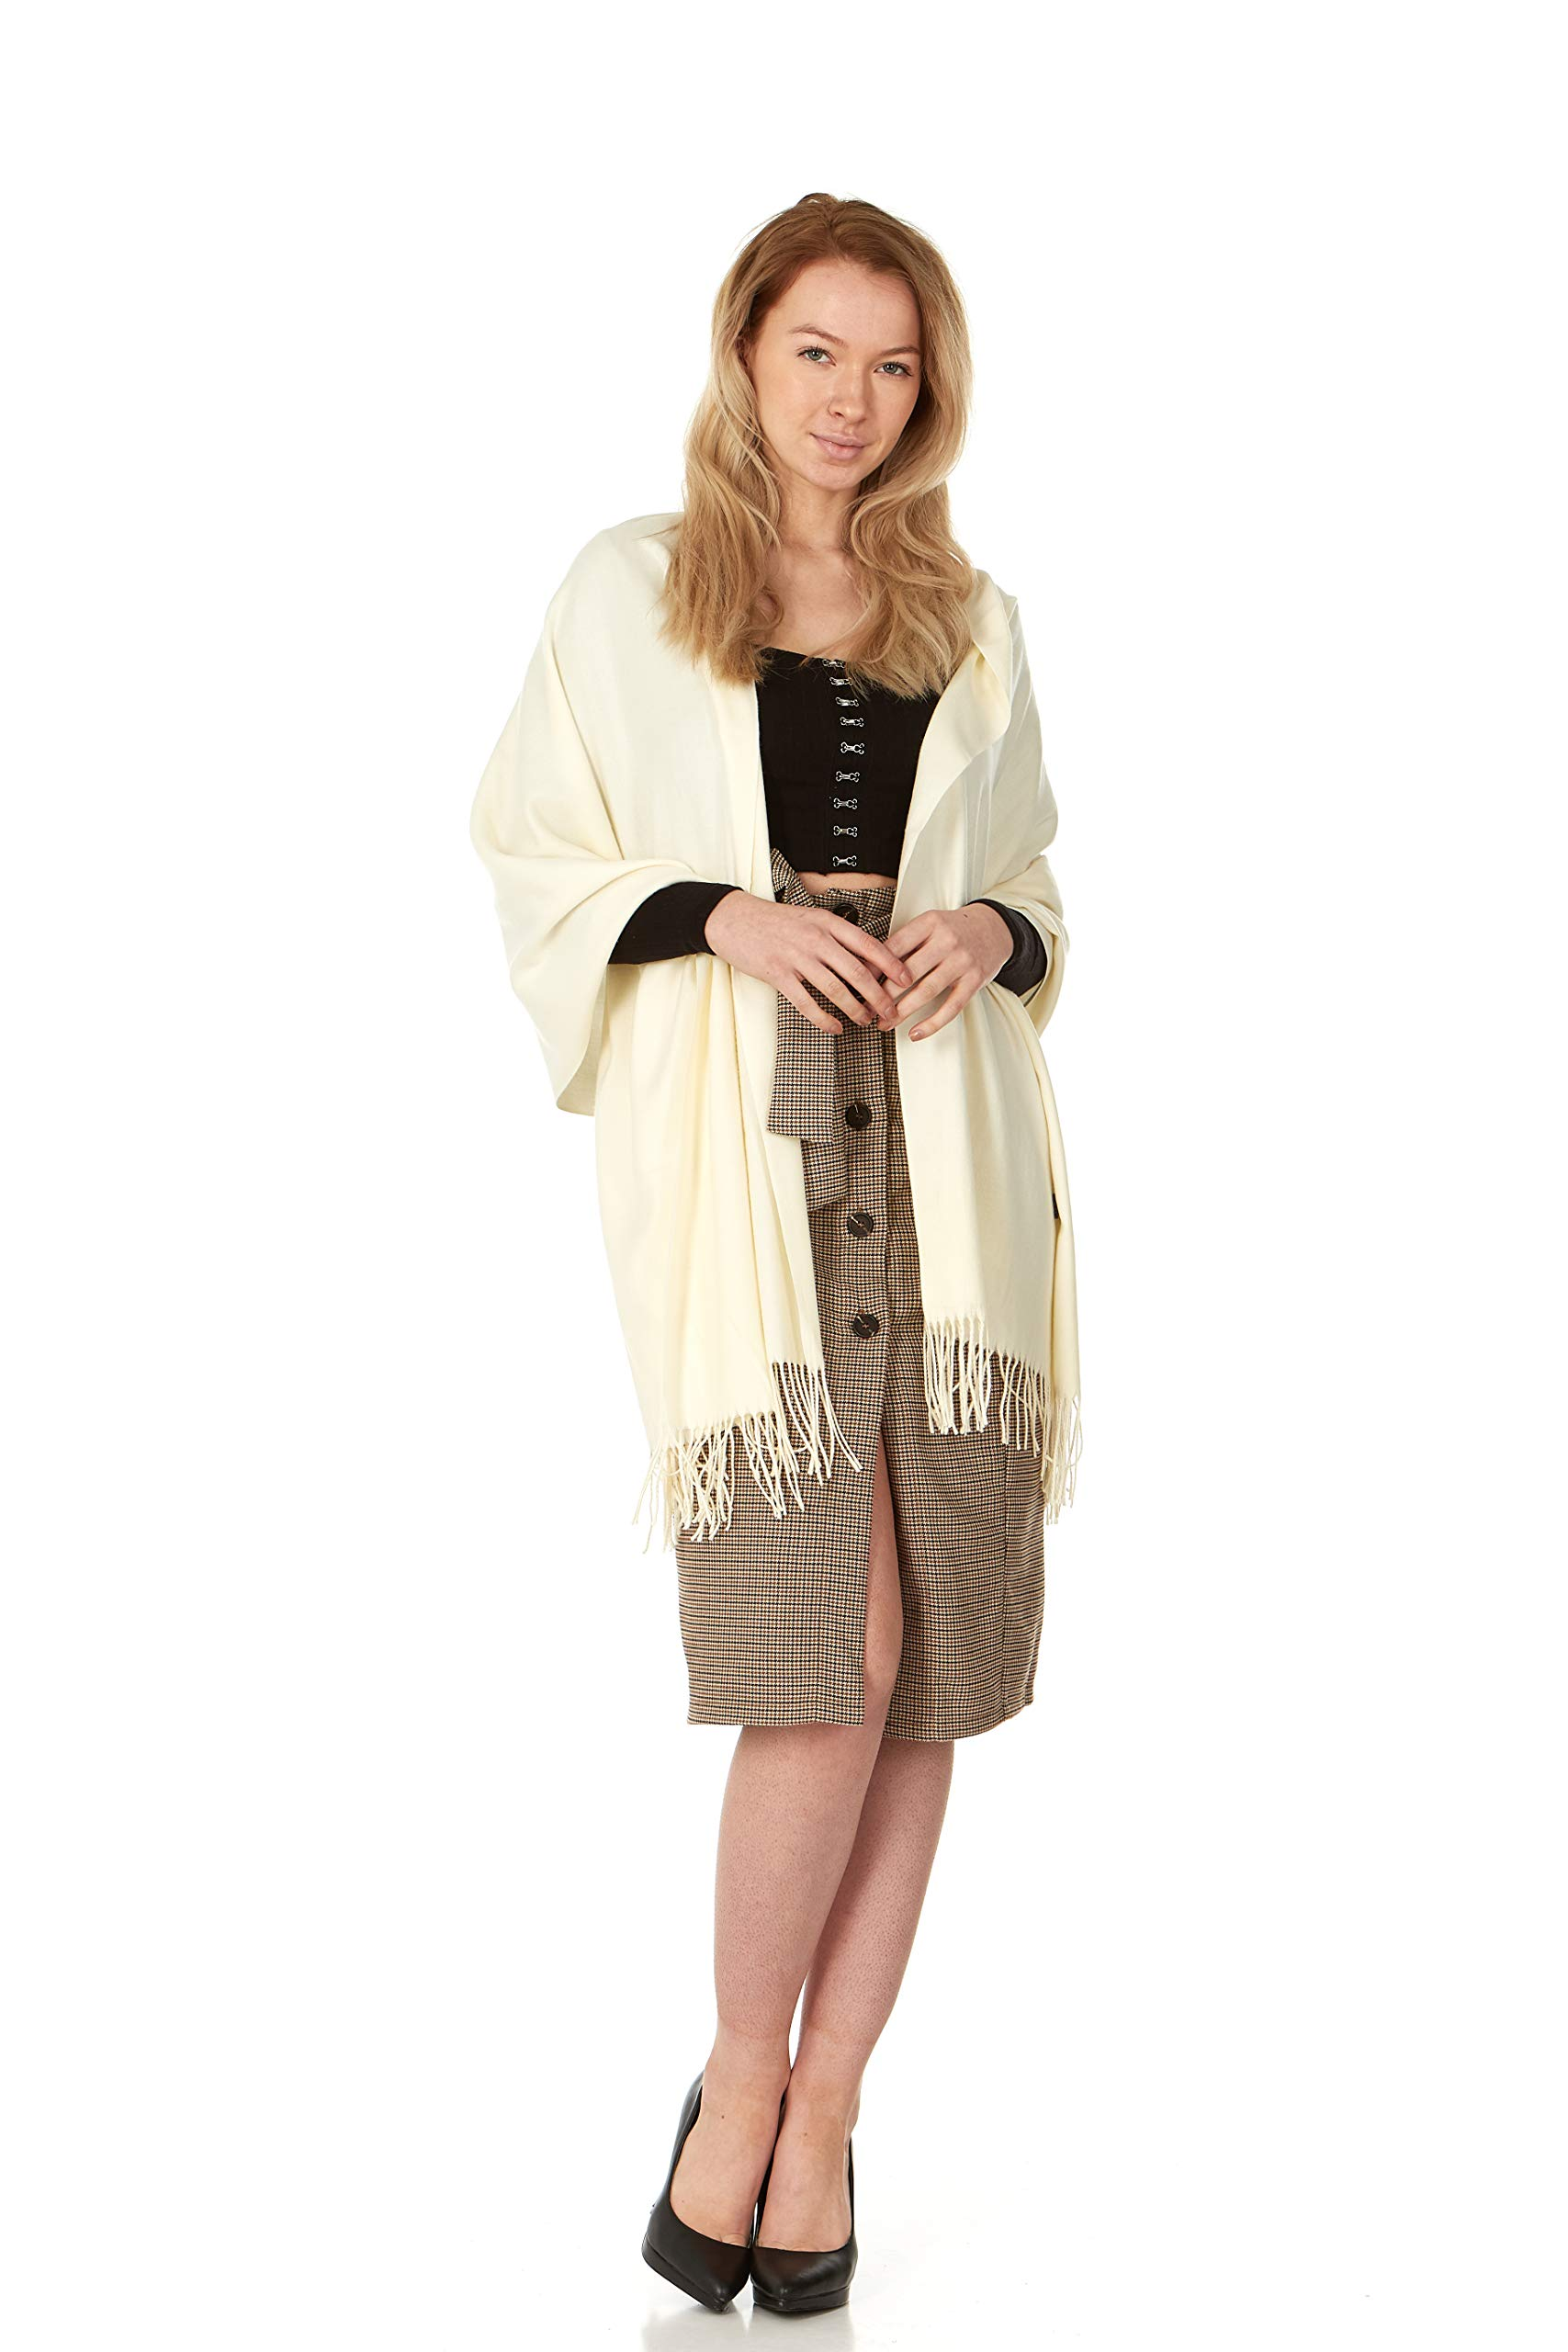 Cashmere & Class Large Soft Cashmere Woven Scarf Wrap – Womans Winter Shawl + Gift Box (White)